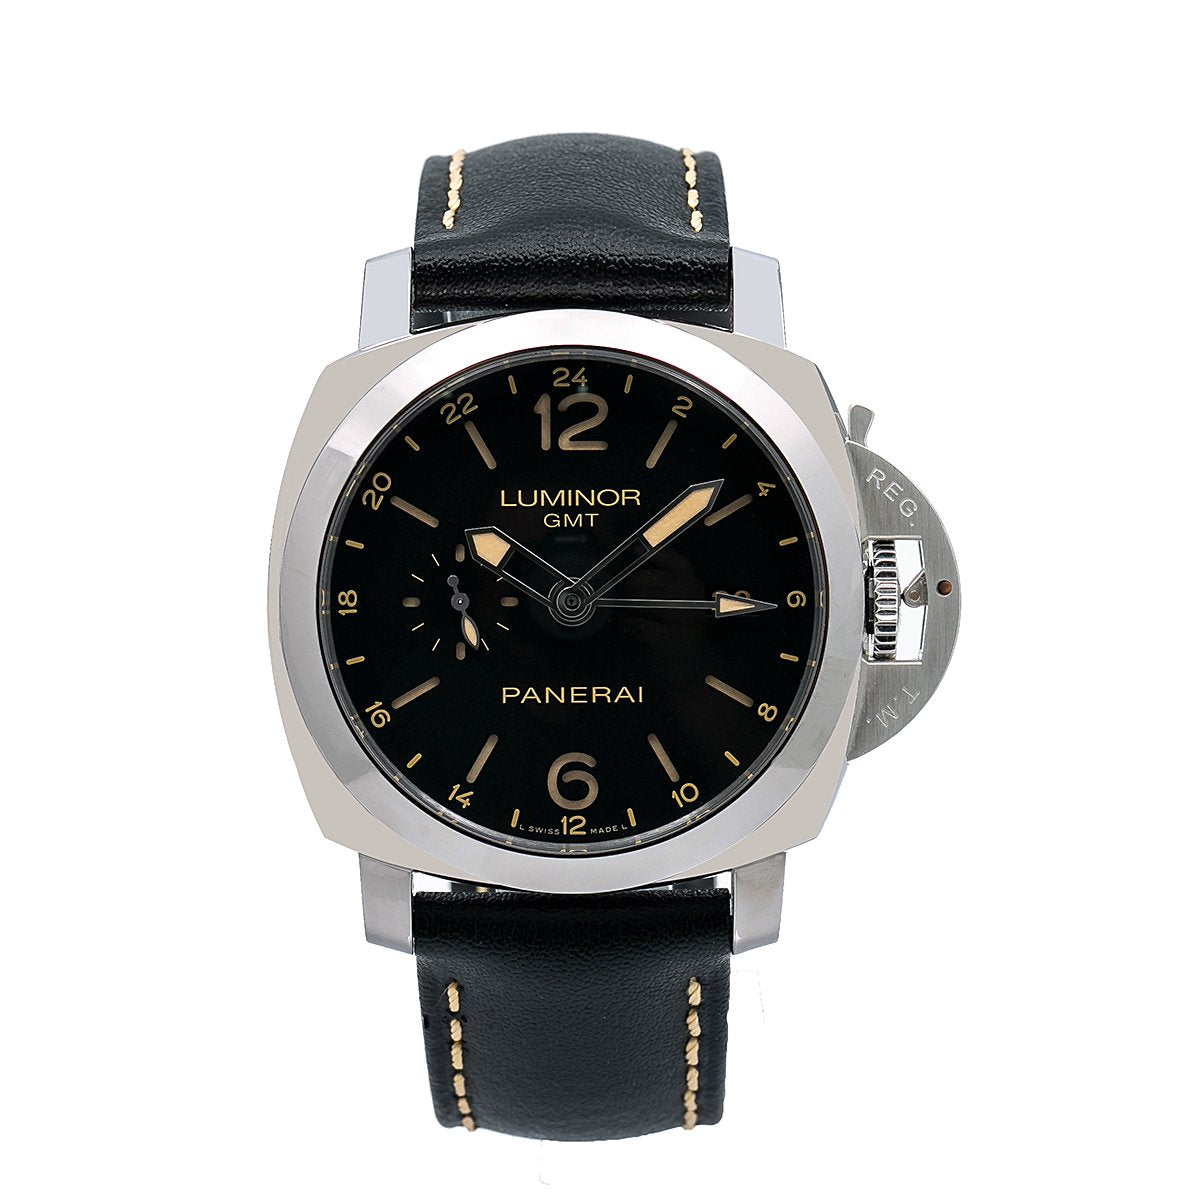 Panerai Luminor 1950 3 Days GMT Automatic PAM00531 44MM Black Dial With Calf Skin Bracelet